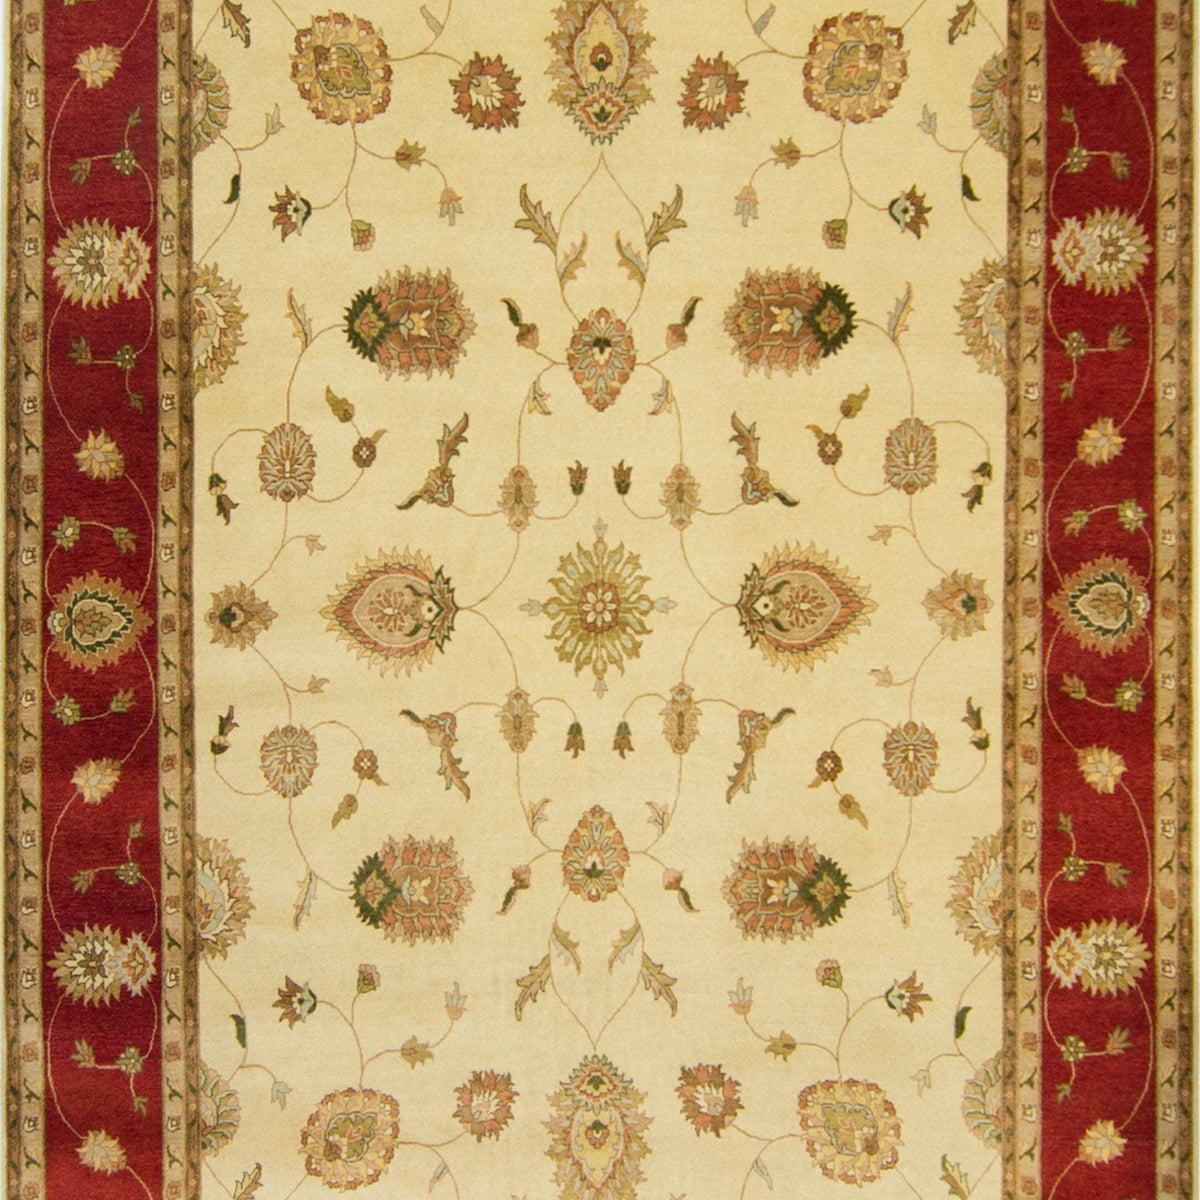 Fine Hand-knotted Chobi Rug 300cm x 500cm Persian-Rug | House-of-Haghi | NewMarket | Auckland | NZ | Handmade Persian Rugs | Hand Knotted Persian Rugs